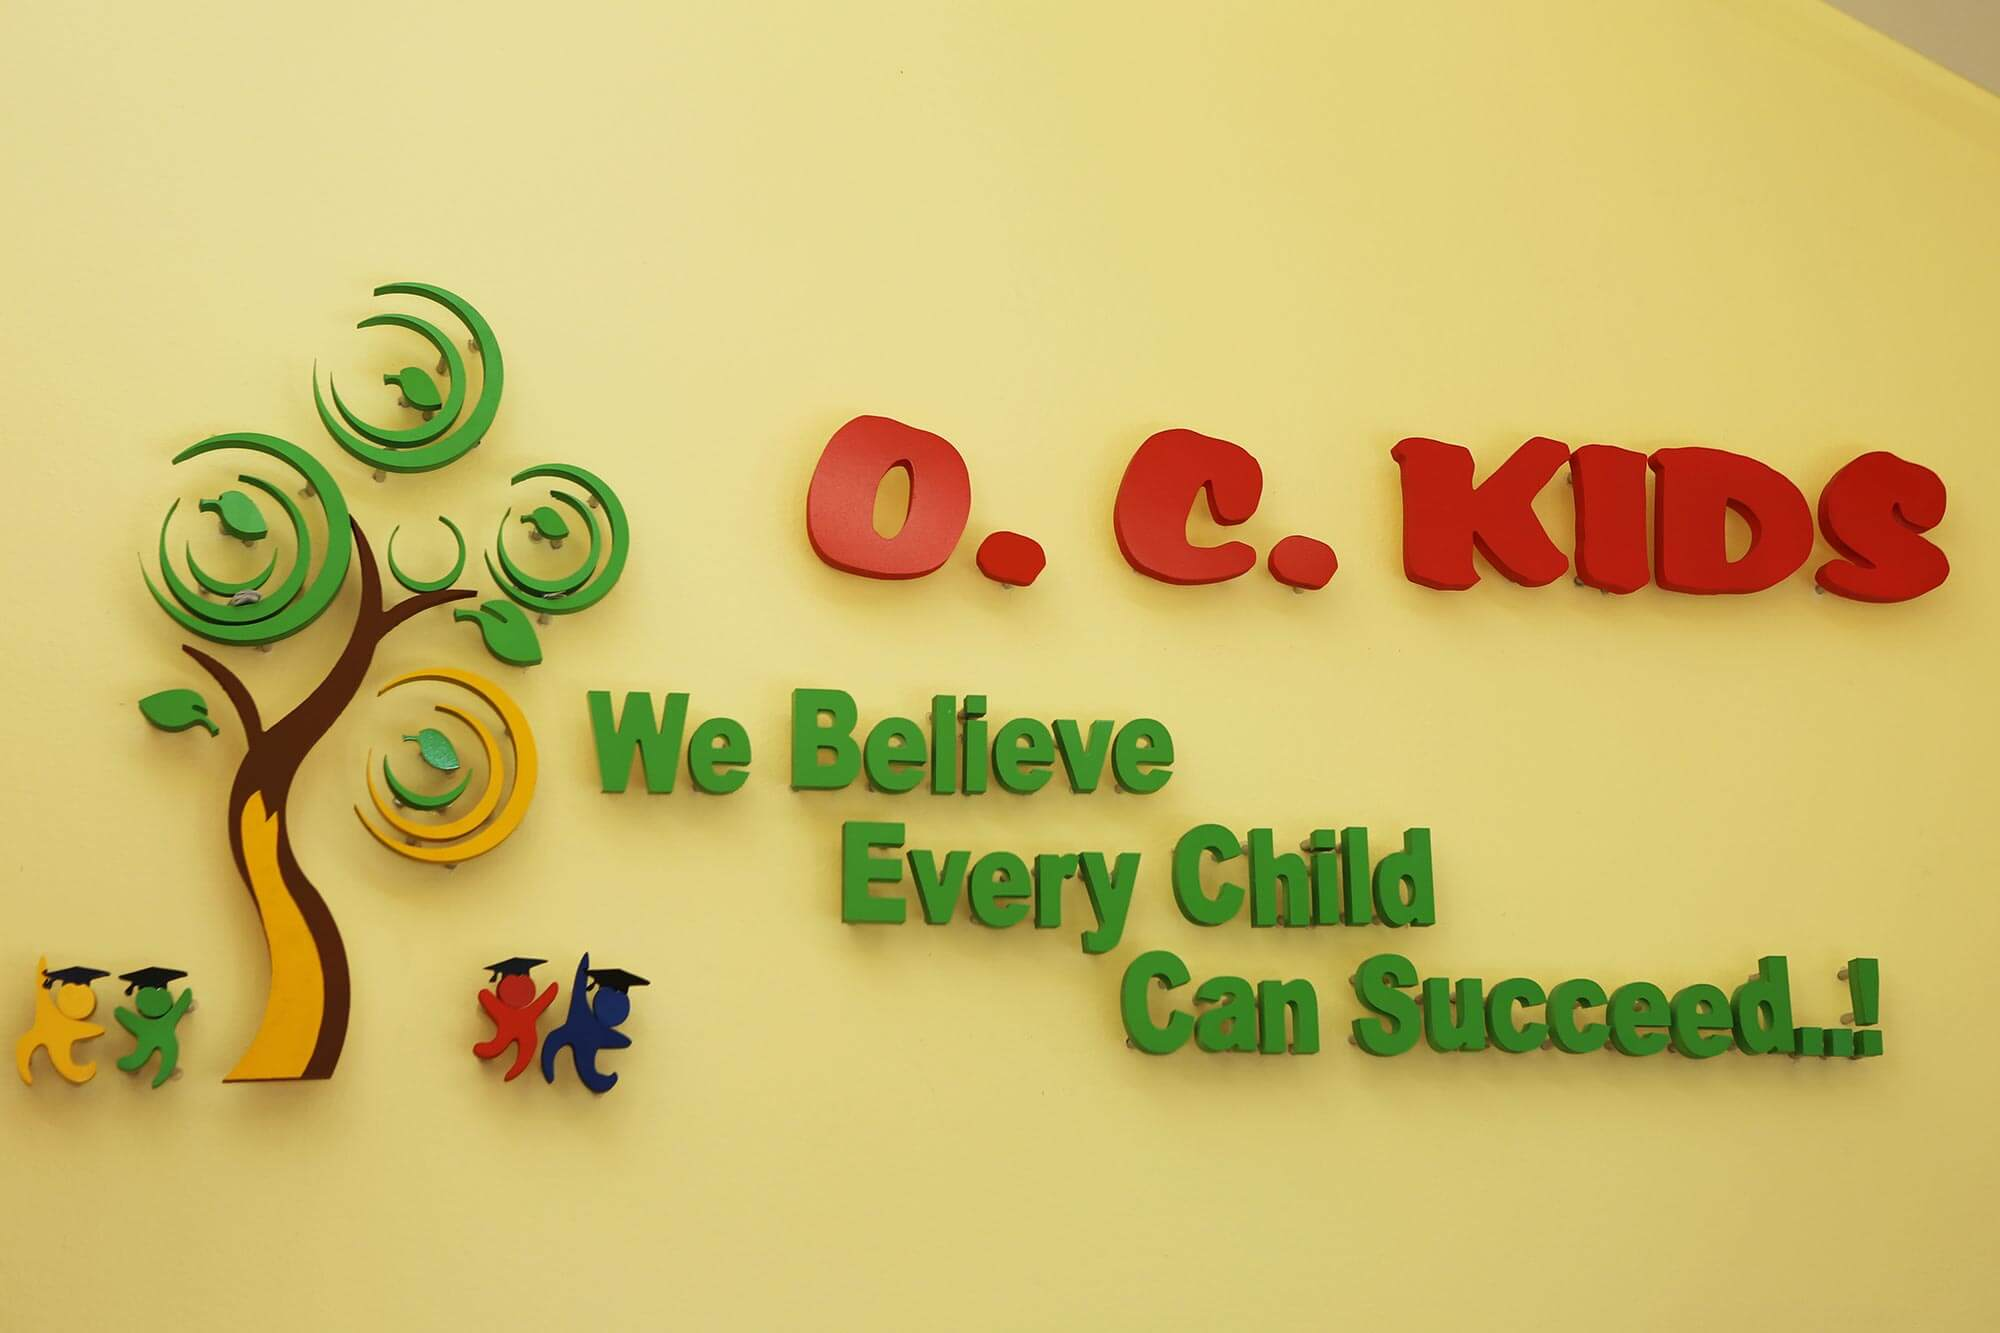 oc kids preschool